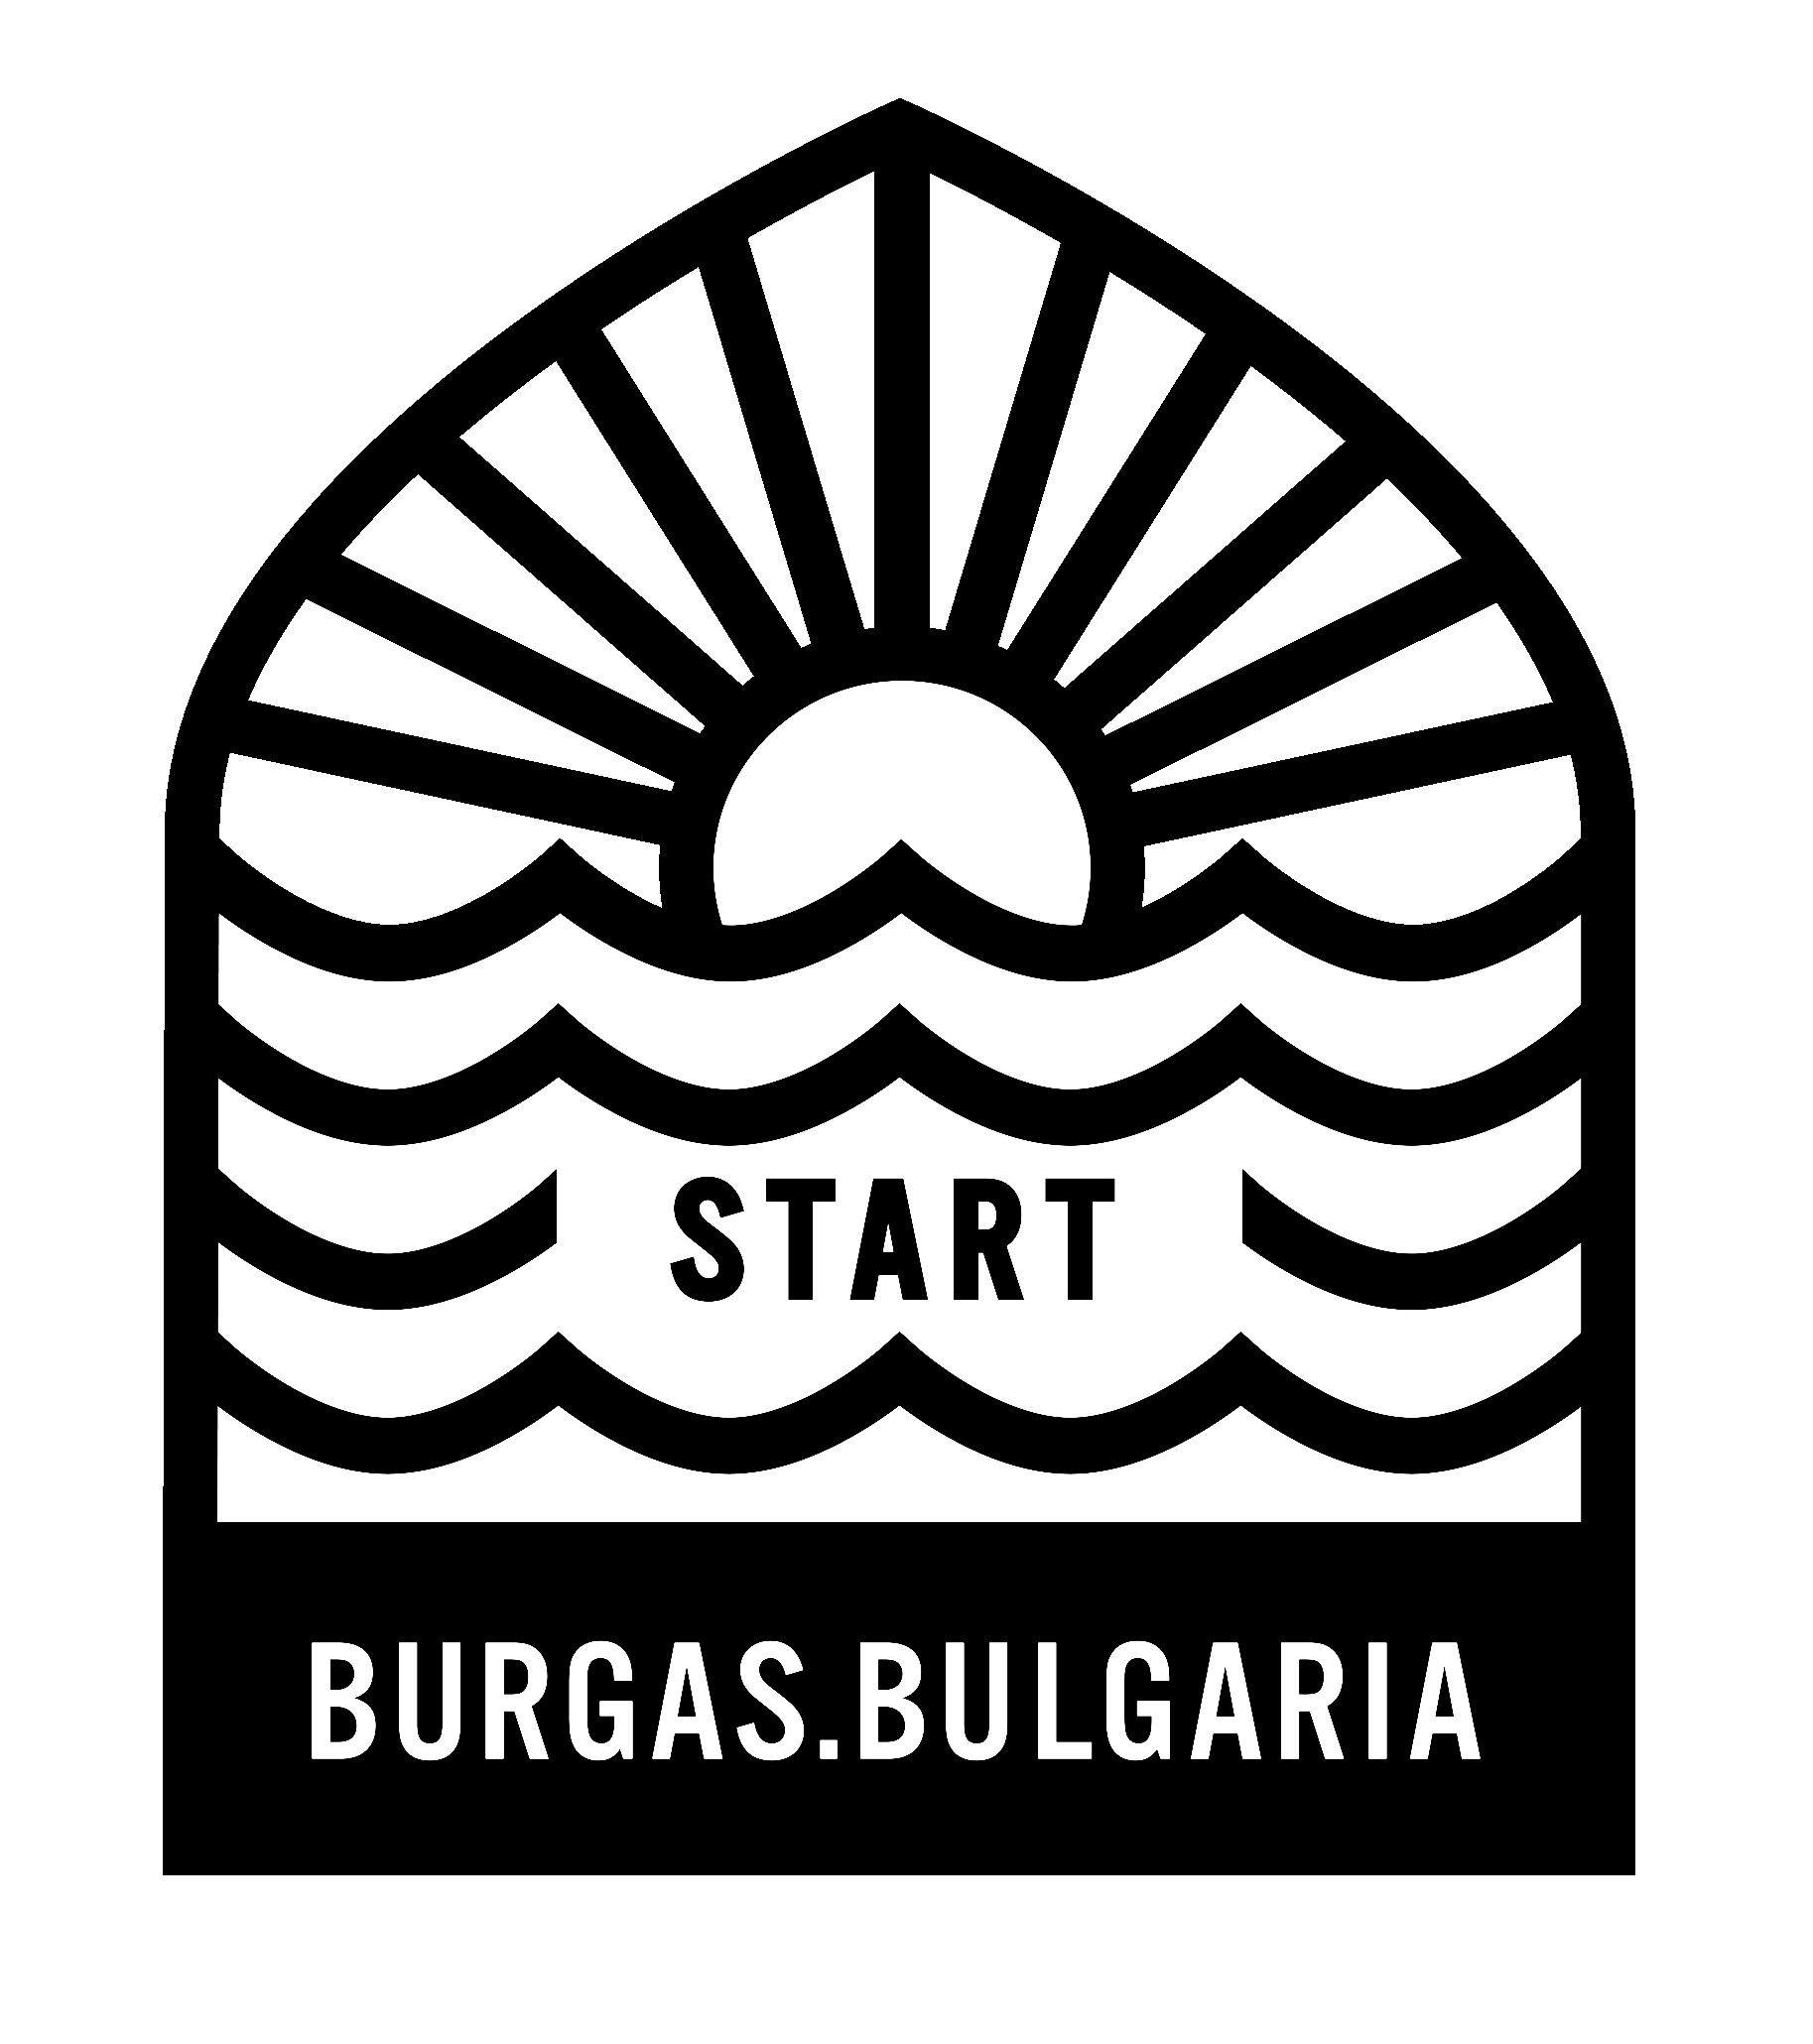 CPStart_Icon_Black.png